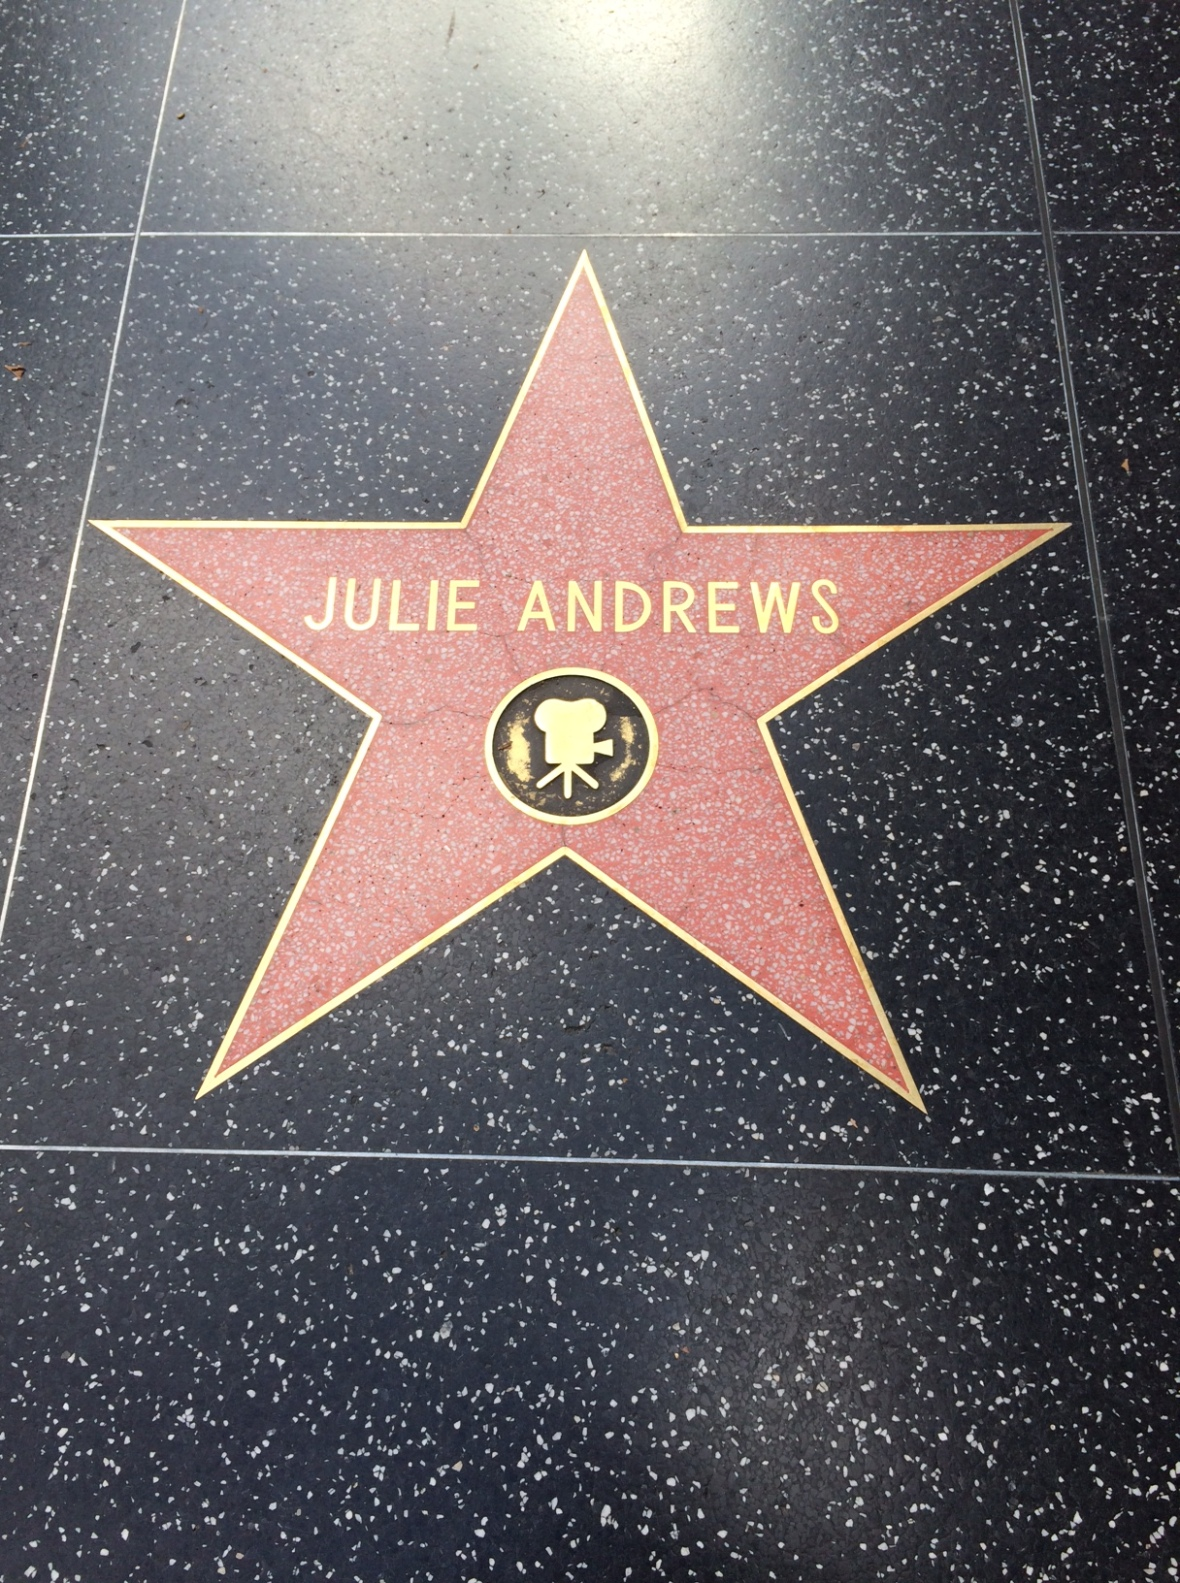 Julie Andrews...my favorite actress